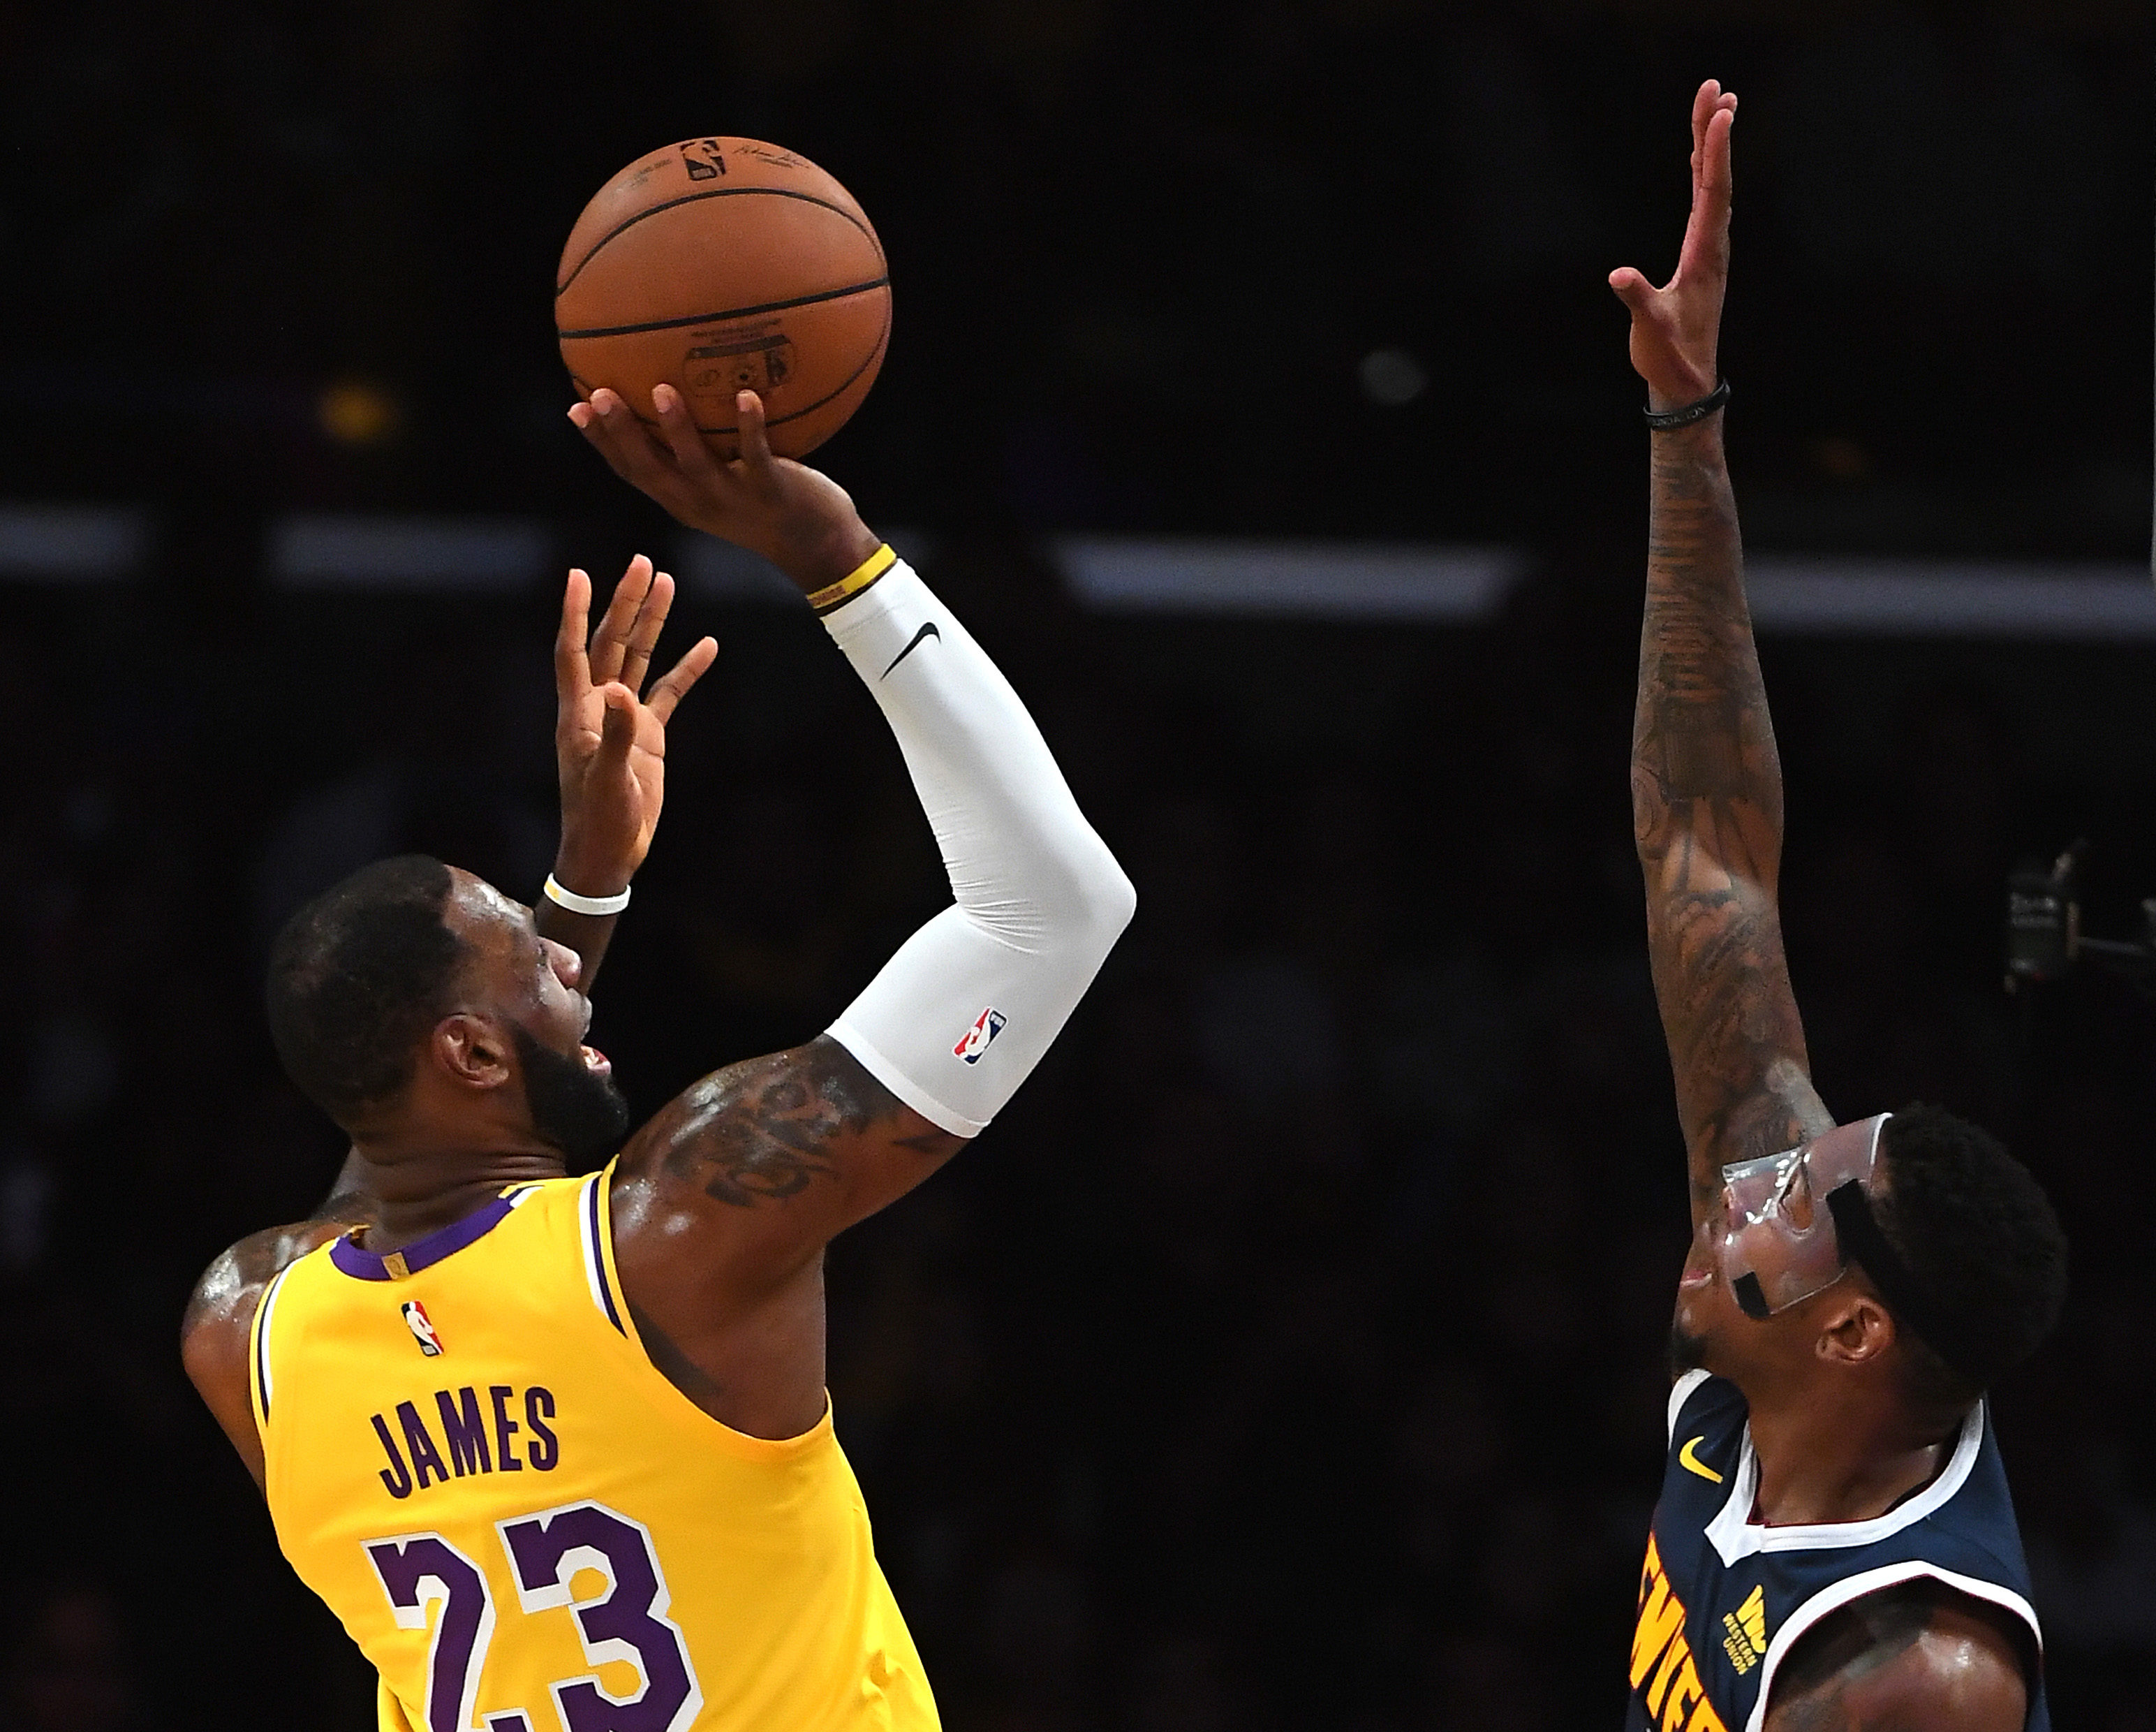 Lakers Lose to Nuggets, Open Preseason 0-2